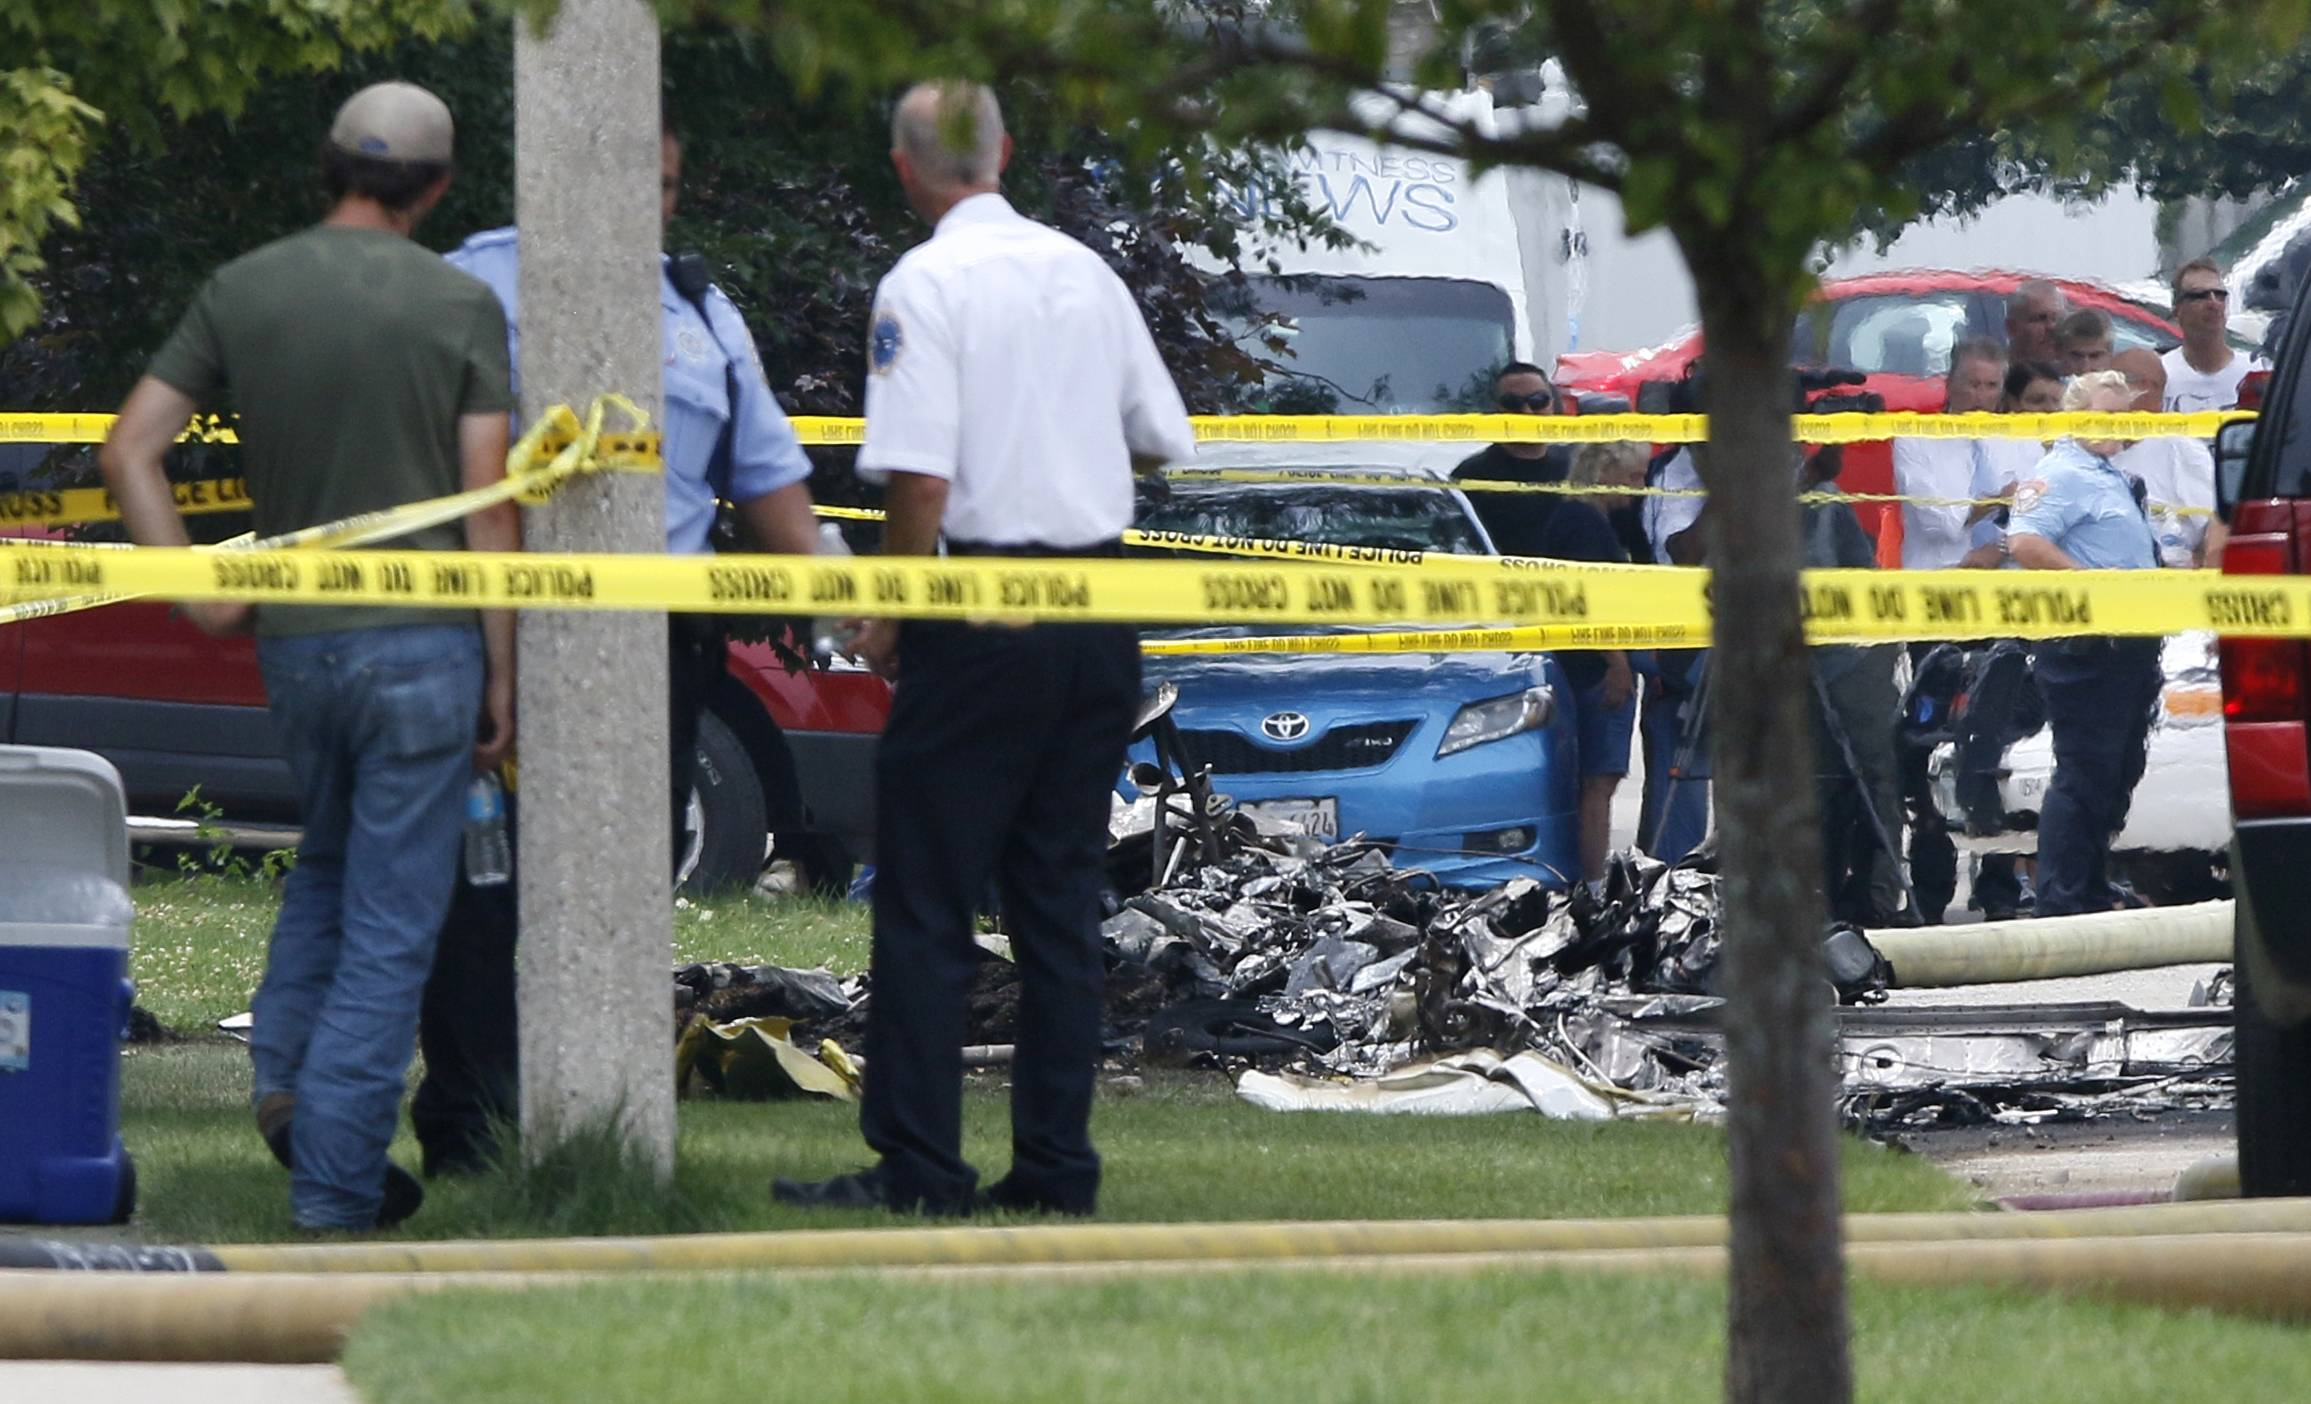 Authorities cordoned off the wreckage after a plane crashed Thursday at Chestnut Hill Road and Bedford Drive in Plainfield near the Joliet border.